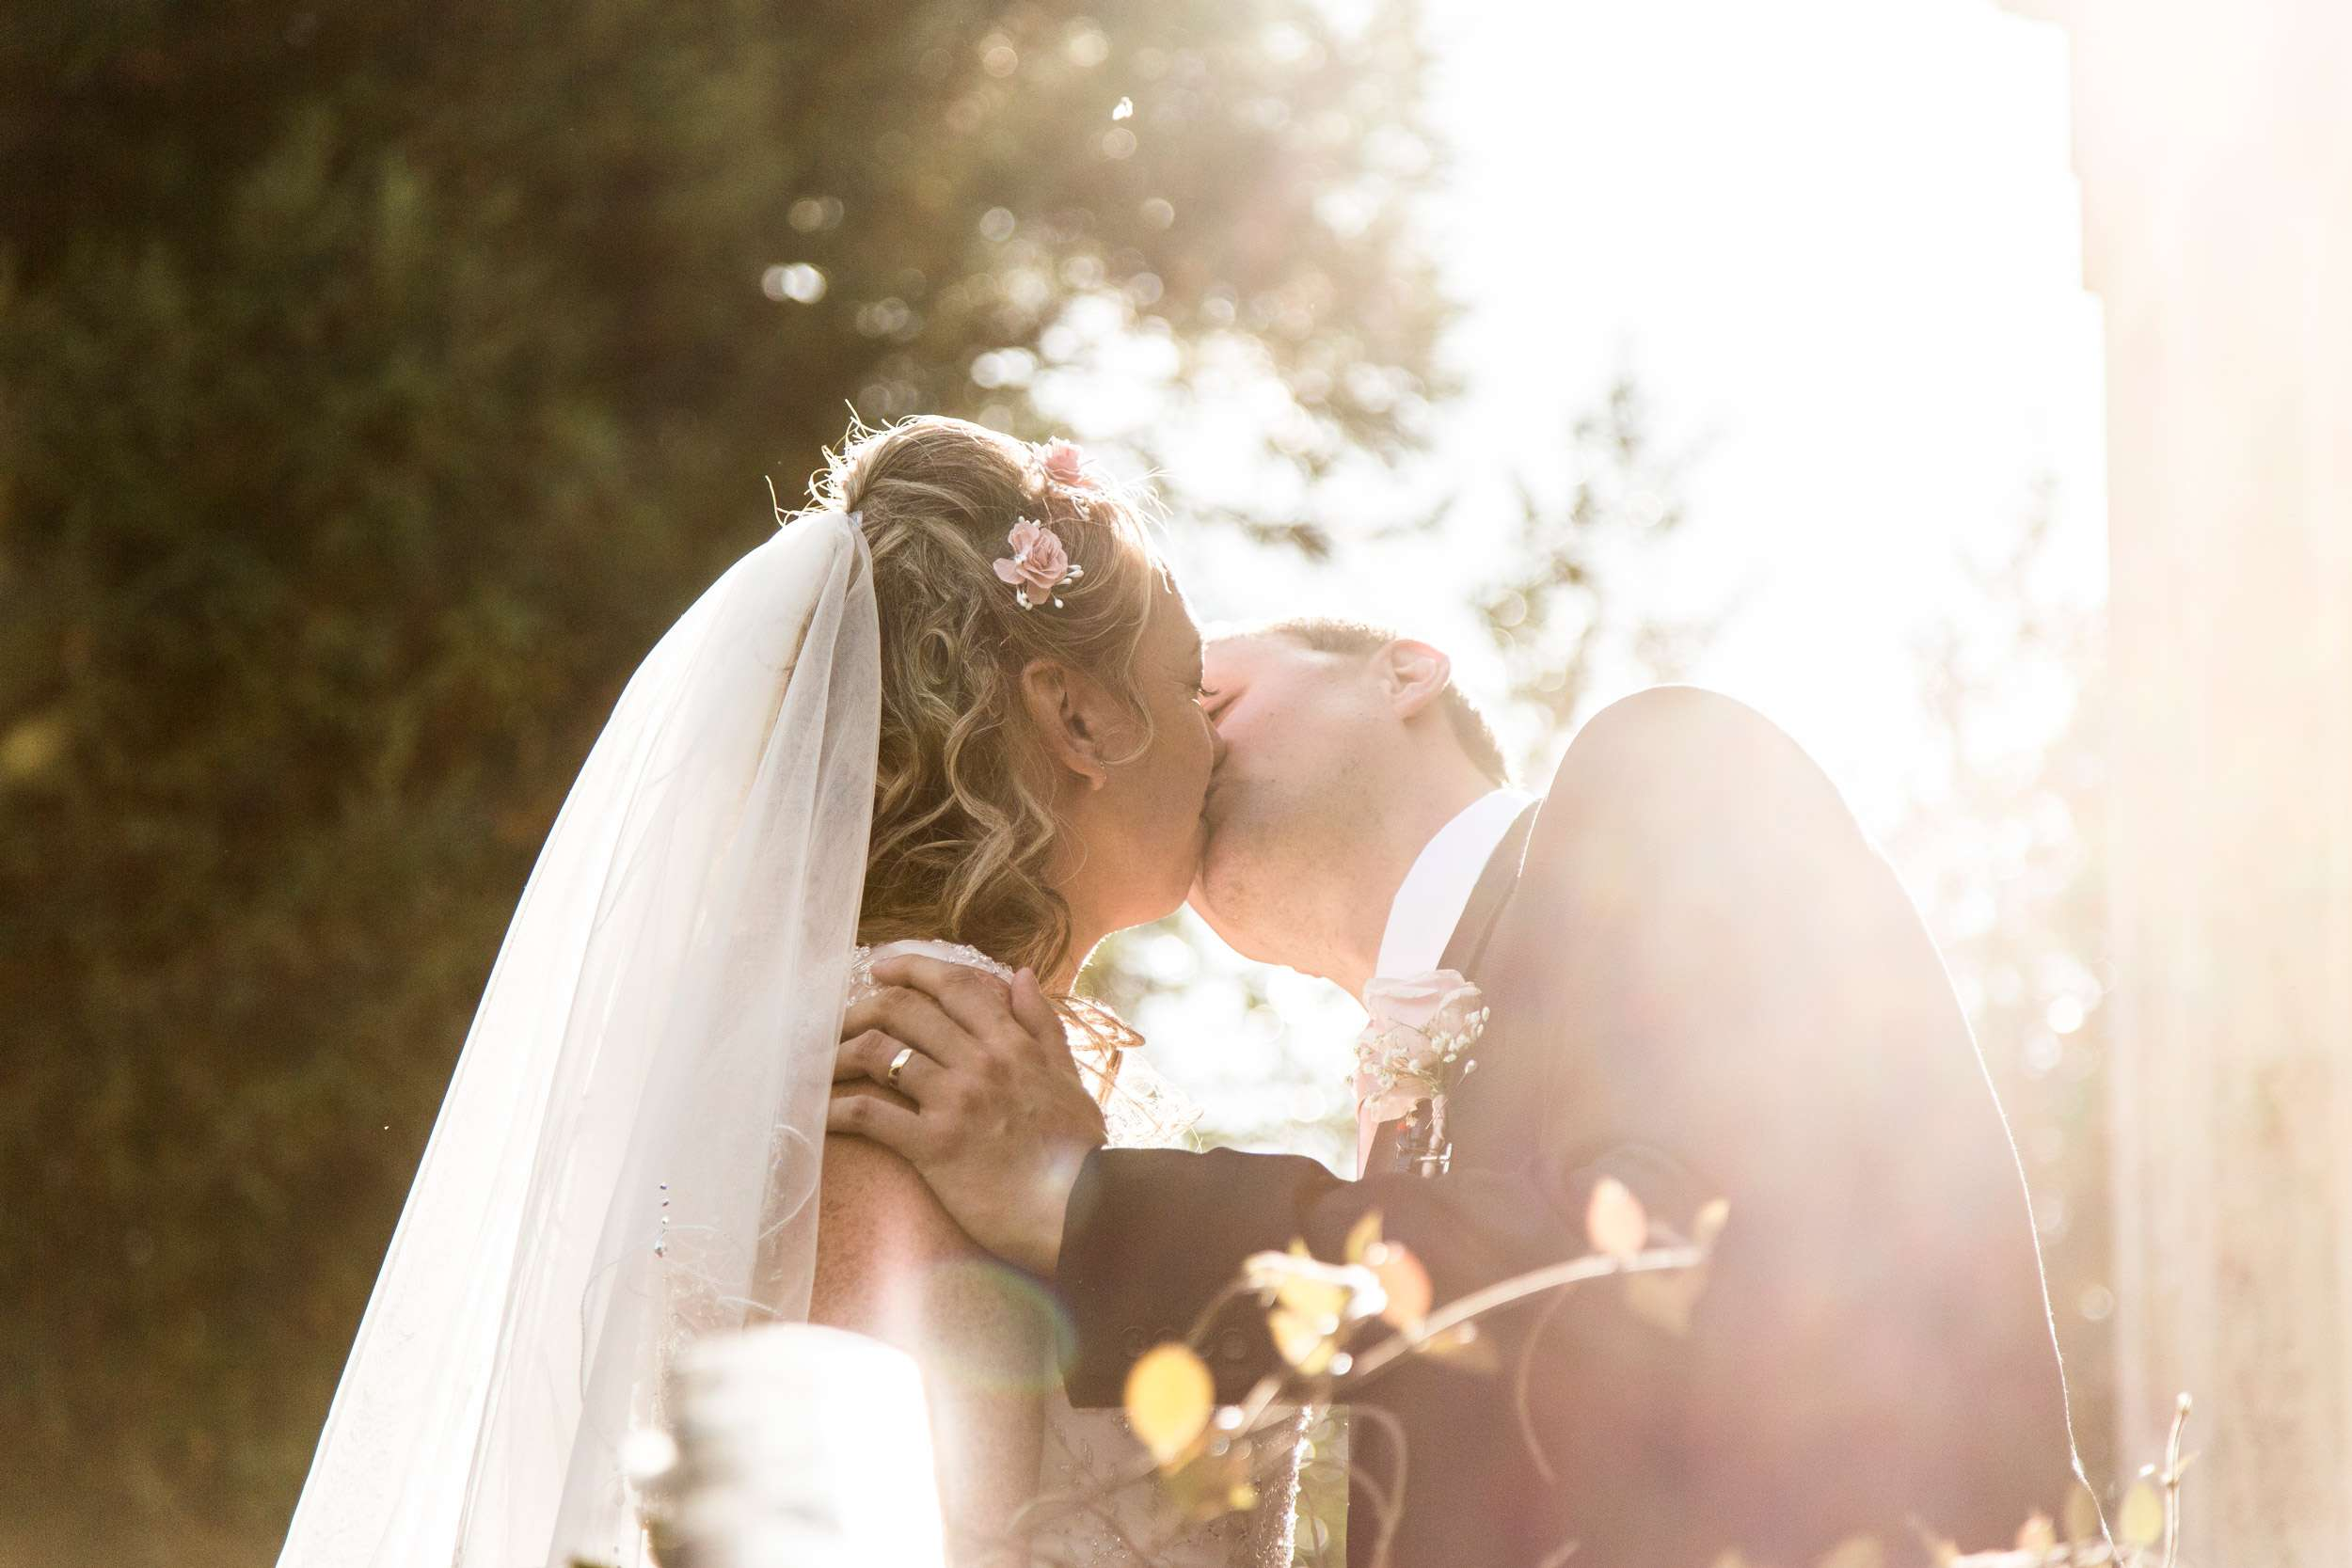 Norfolk Wedding Photography. Bride & Groom kissing with trees in the background and sun shining through